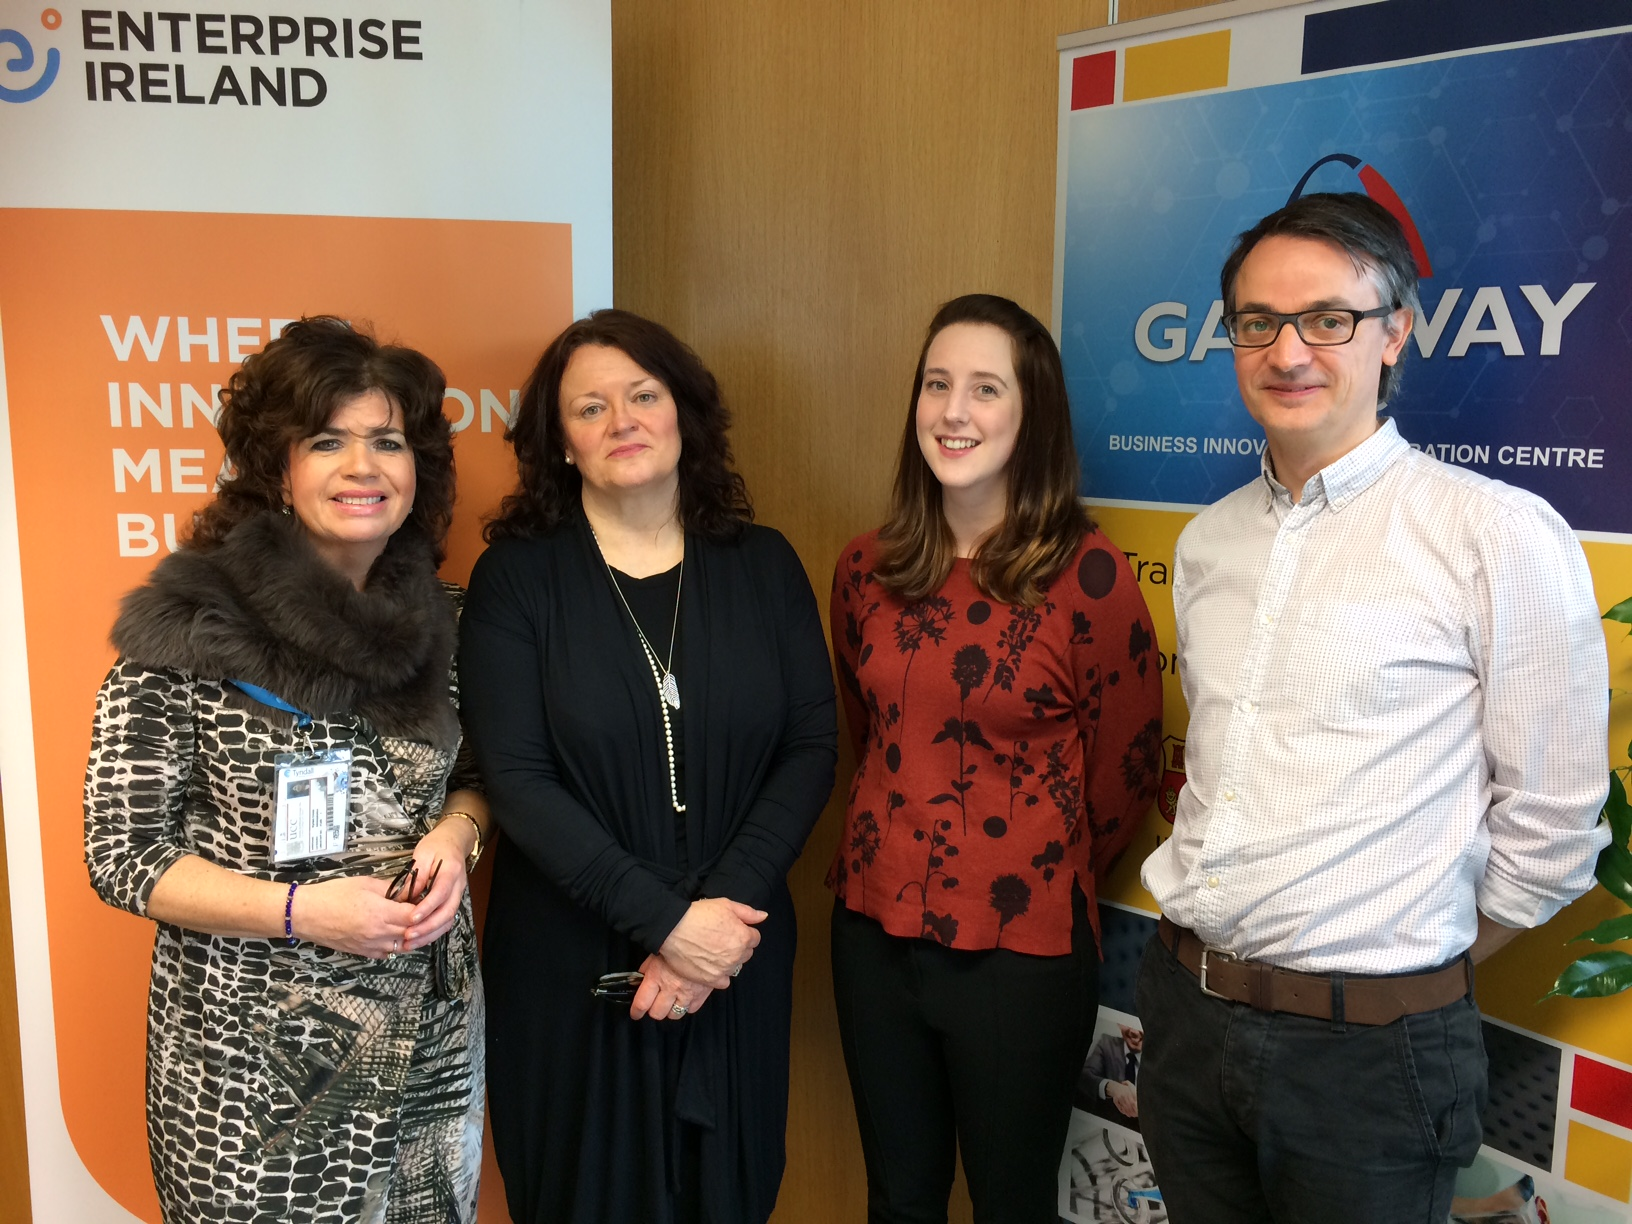 Myriam Cronin, GatewayUCC, Jacqui Norton, Enterprise Ireland along with AnnMarie Looney and John O Toole from the INFANT research centre.